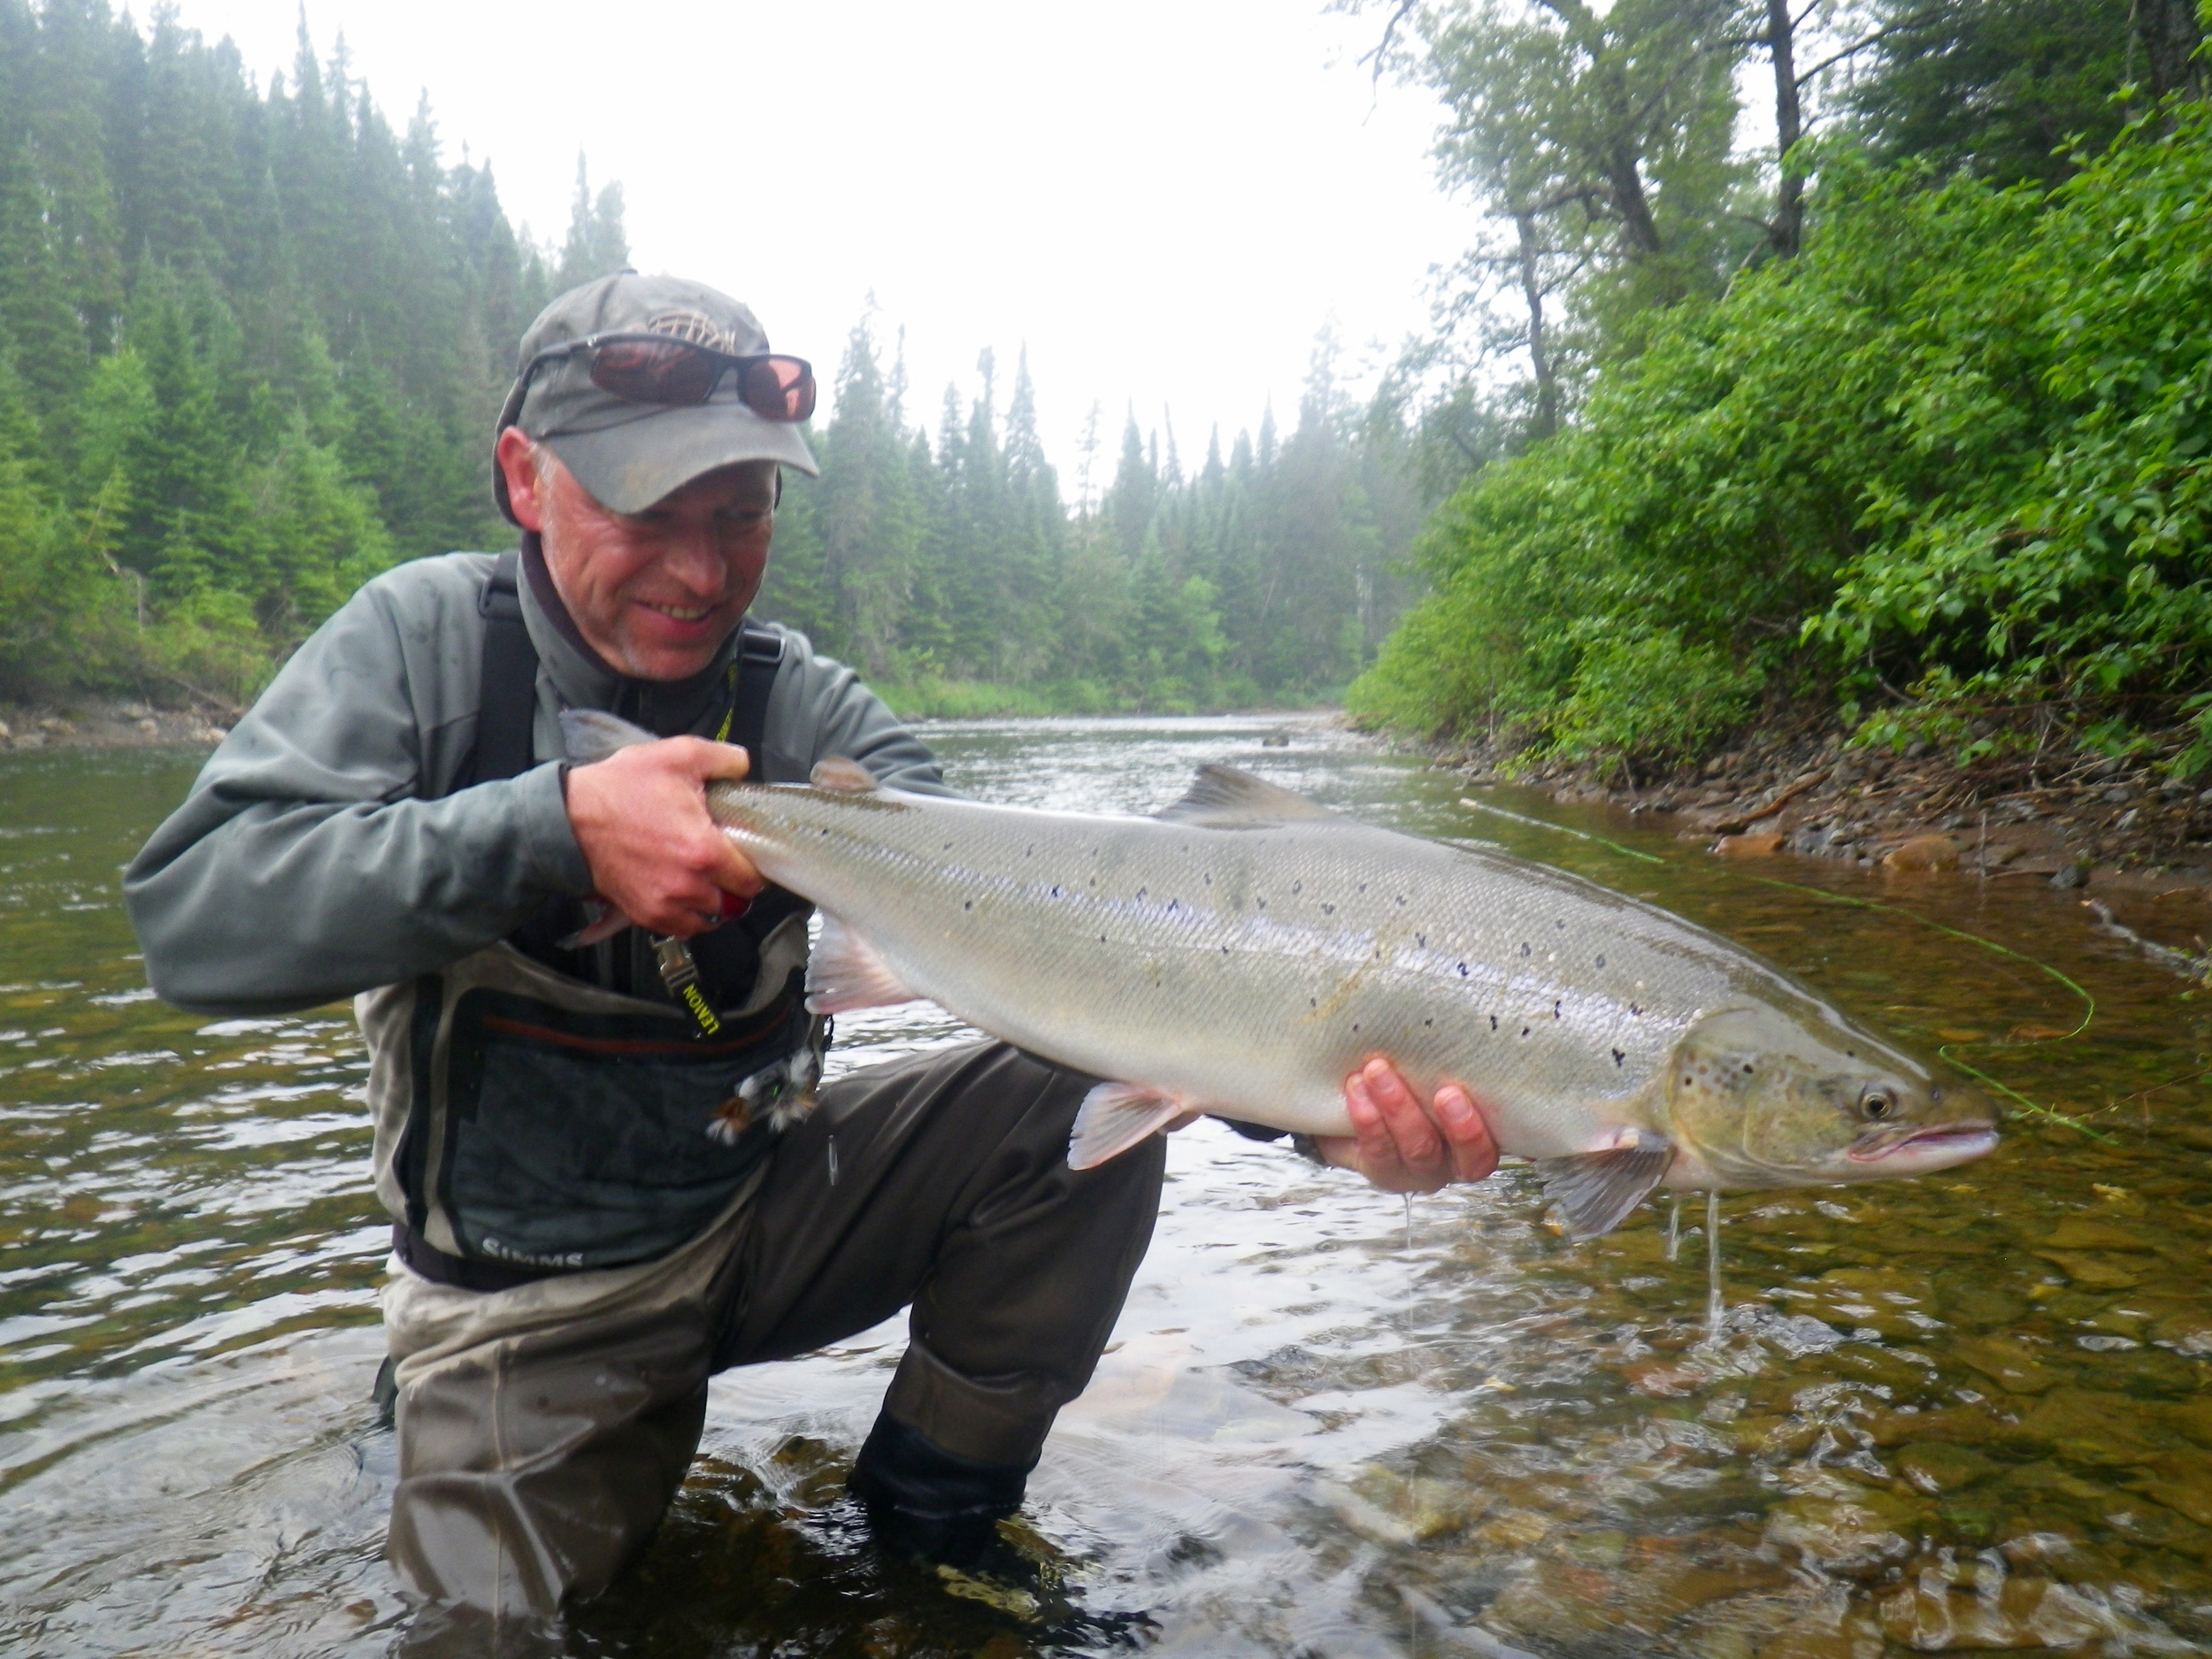 Denmark angler Thomas Mahnke has been a regular at salmon lodge for many years, he sure knows his stuff!